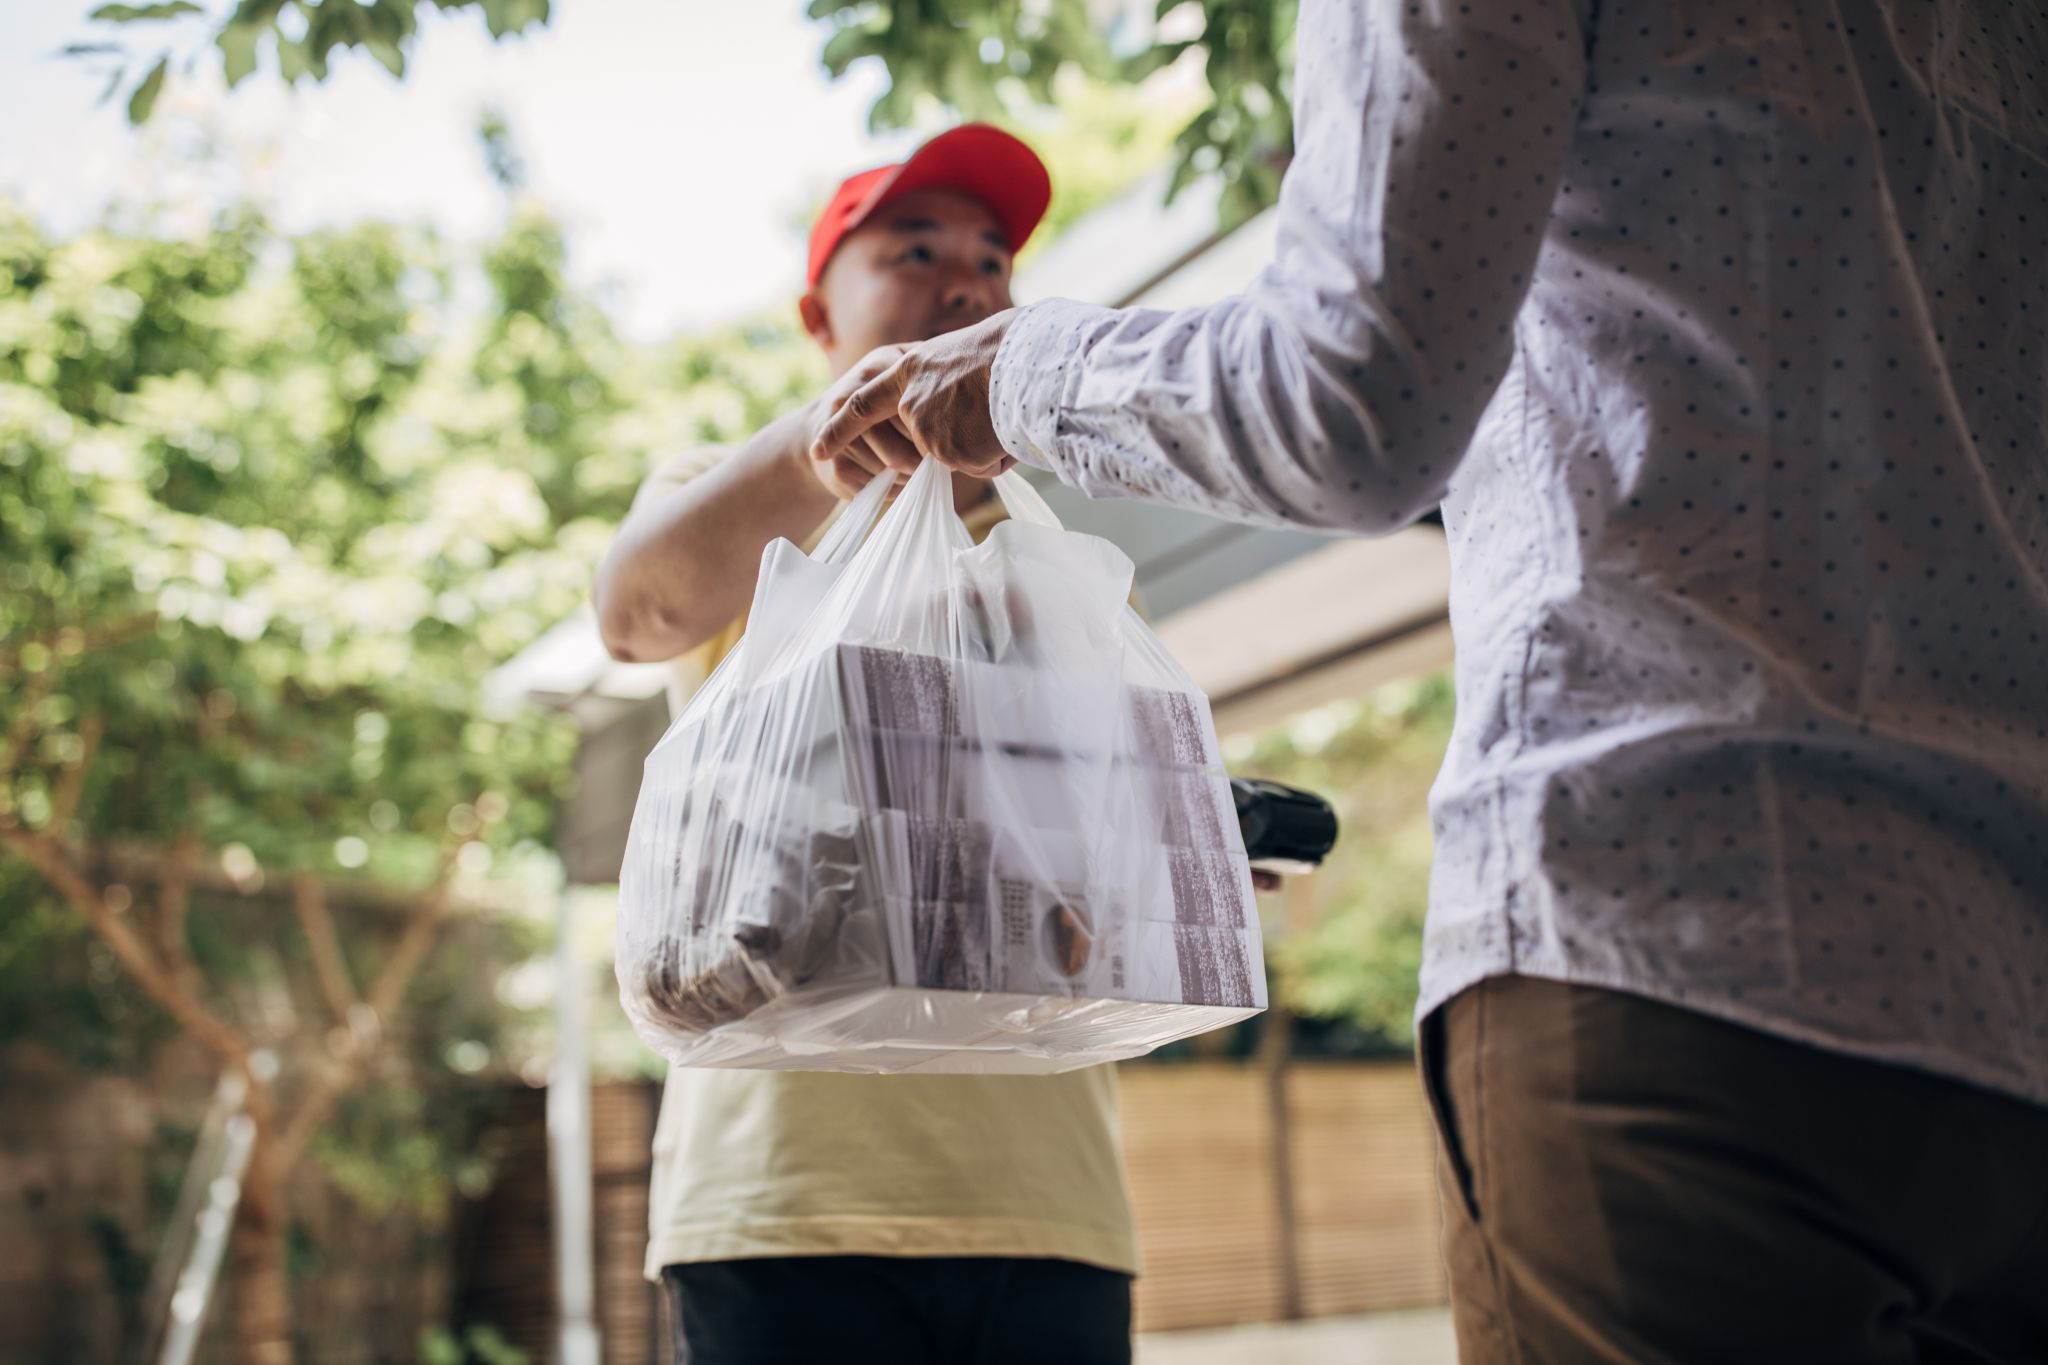 California Proposes Law To Protect Restaurants Being Added To Food Delivery Apps Without Permission photo